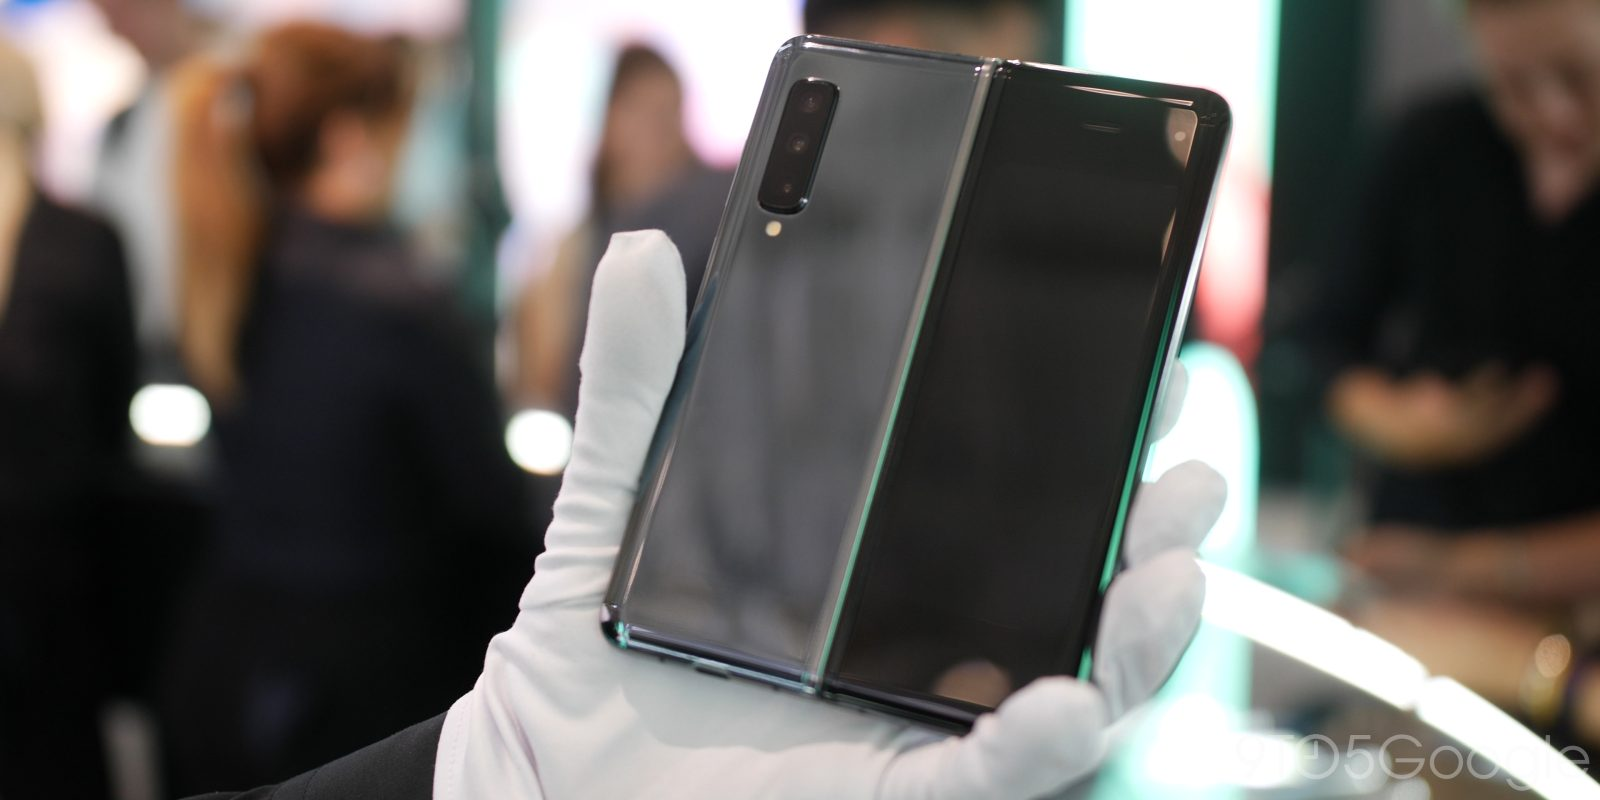 Samsung shows how fragile the Galaxy Fold is with official care guide [Video]